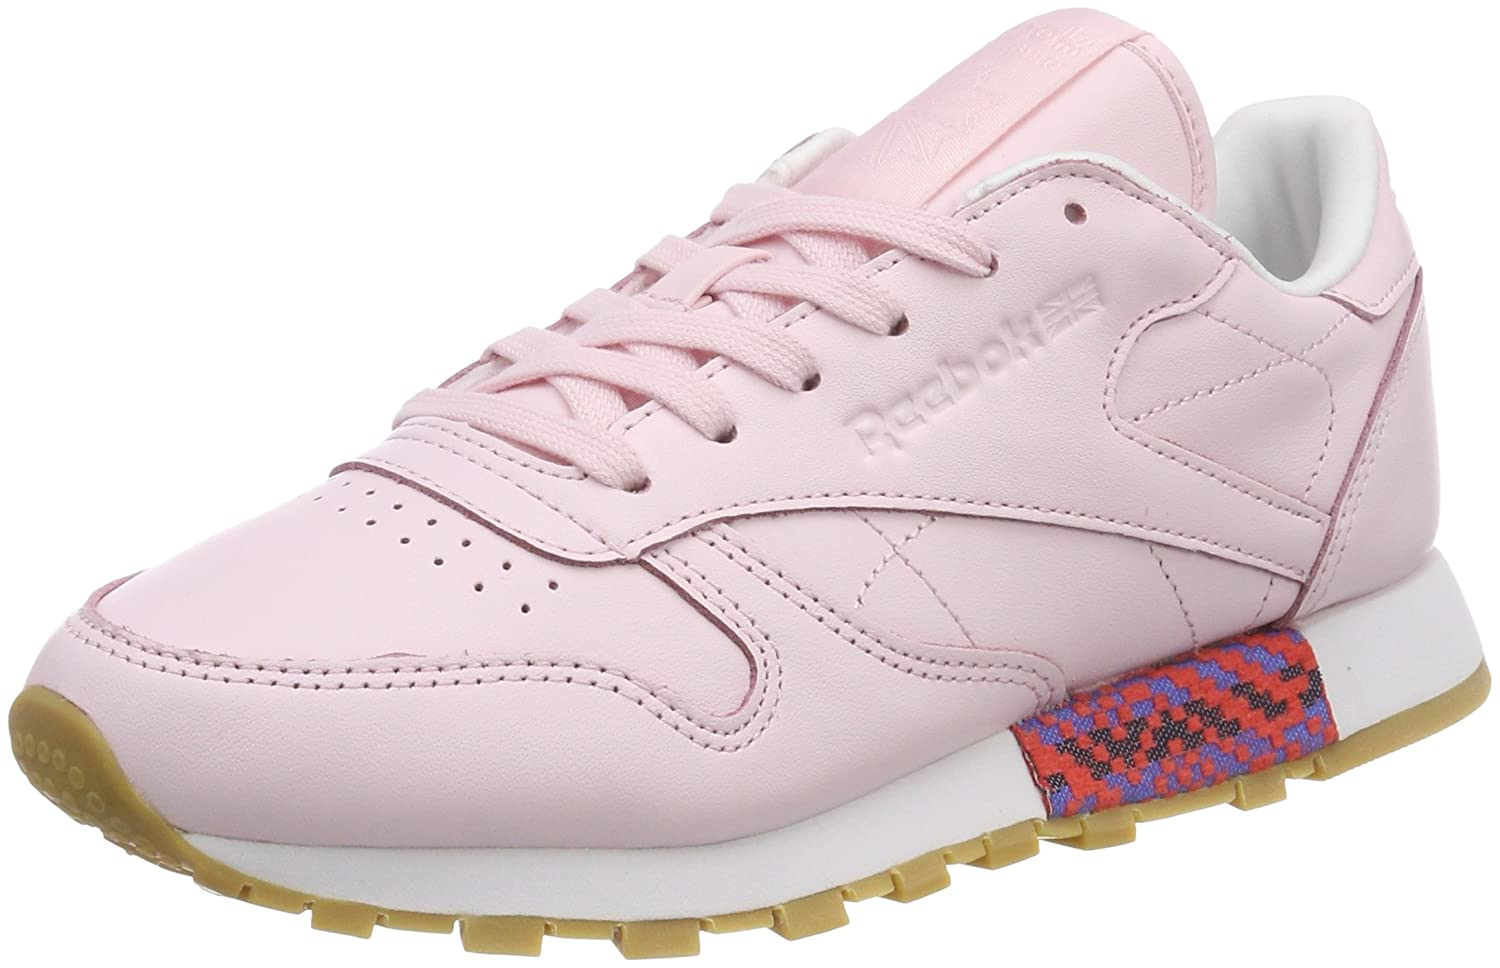 Aster Chaussures enfant MOCADI Aster soldes Cult Chaussures Portes Lea Baskets basses Cult soldes Femme chaussures sneakers Reebok Classic Leather Old Meets New BD3155 LZV5WjD